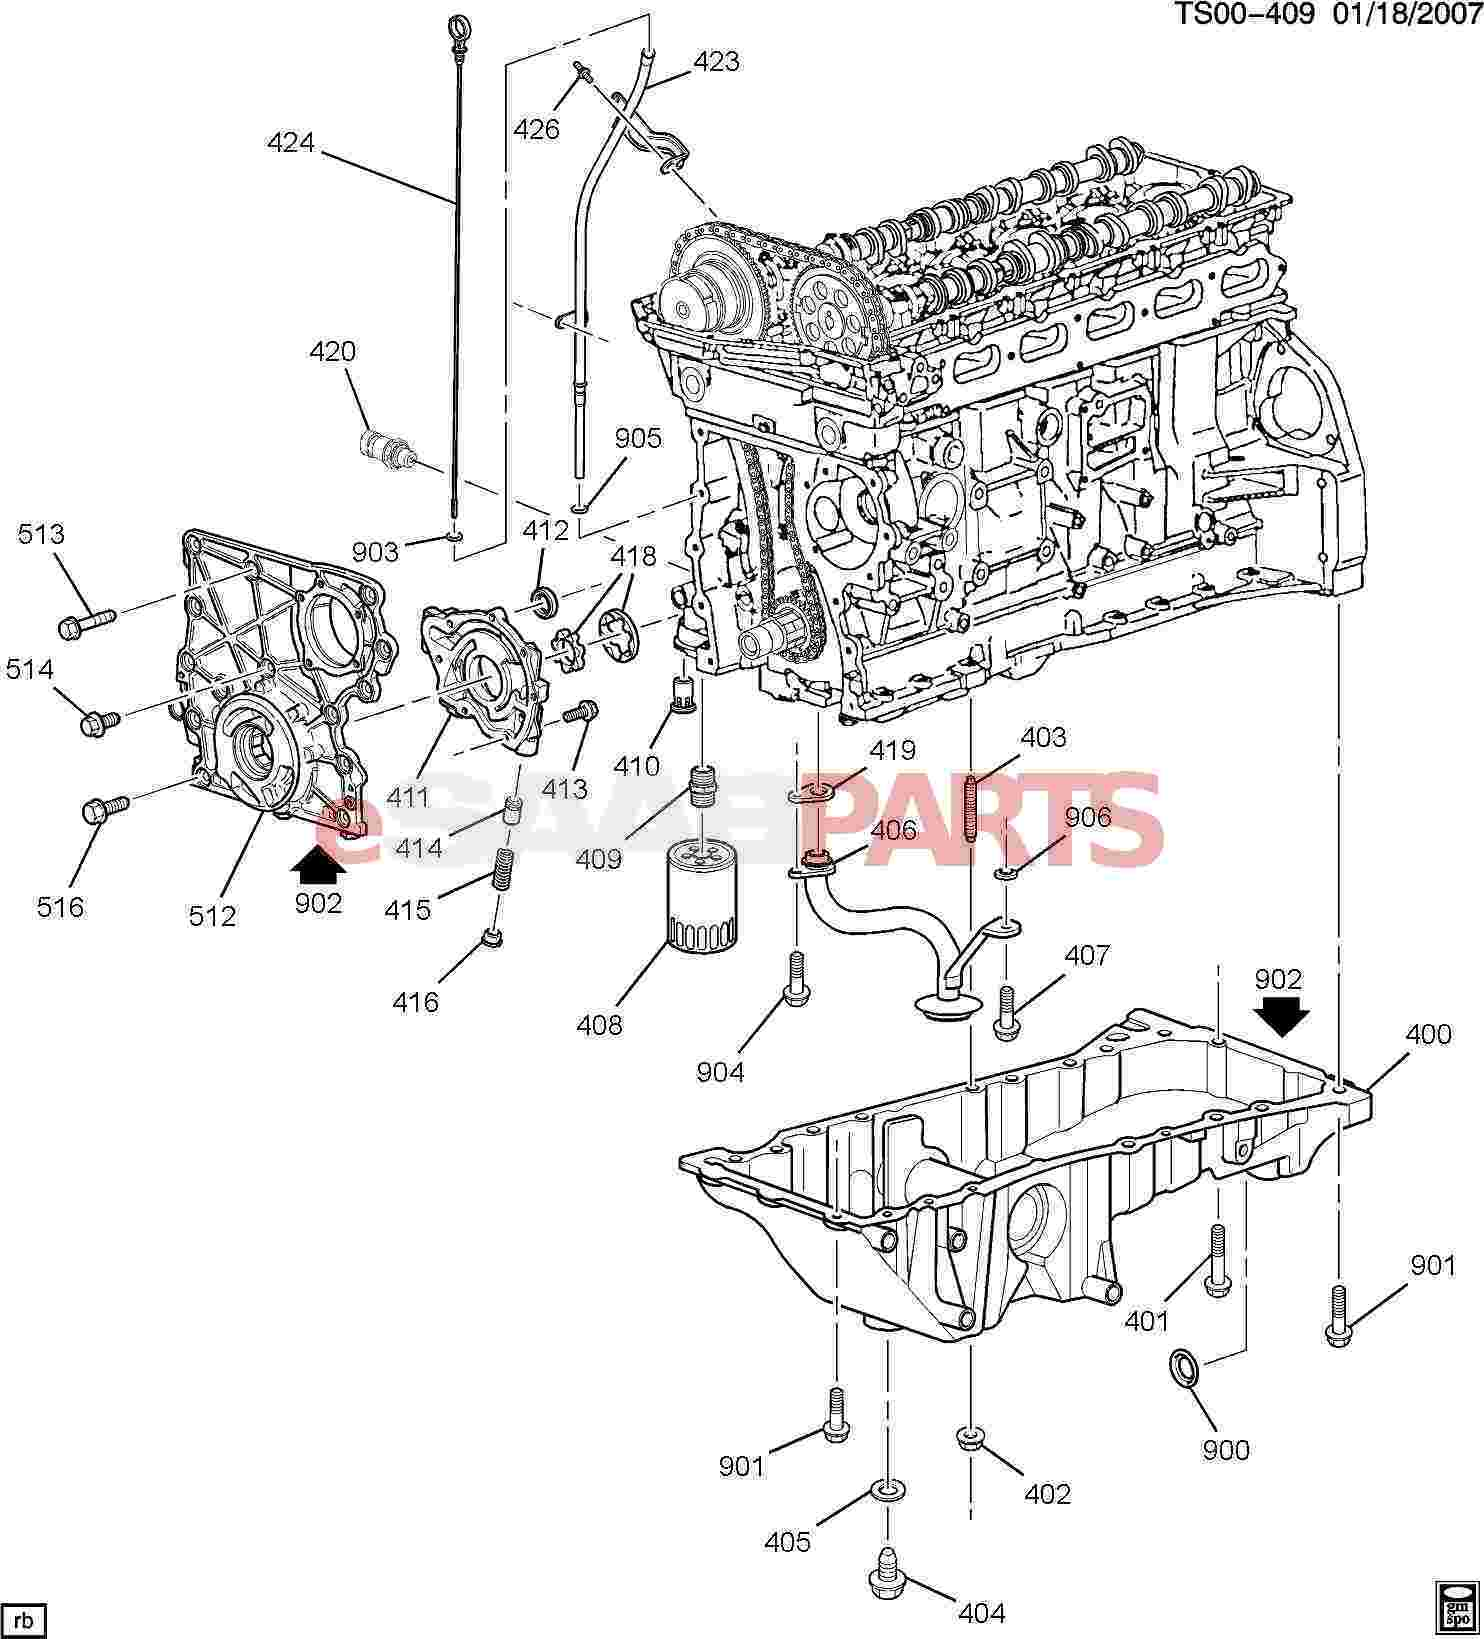 eSaabParts.com - Saab 9-7x > Engine Parts > Engine Internal 4.2S > Engine  ASM-4.2L L6 Part 4 Oil Pump, Pan And Related Parts (4.2S)